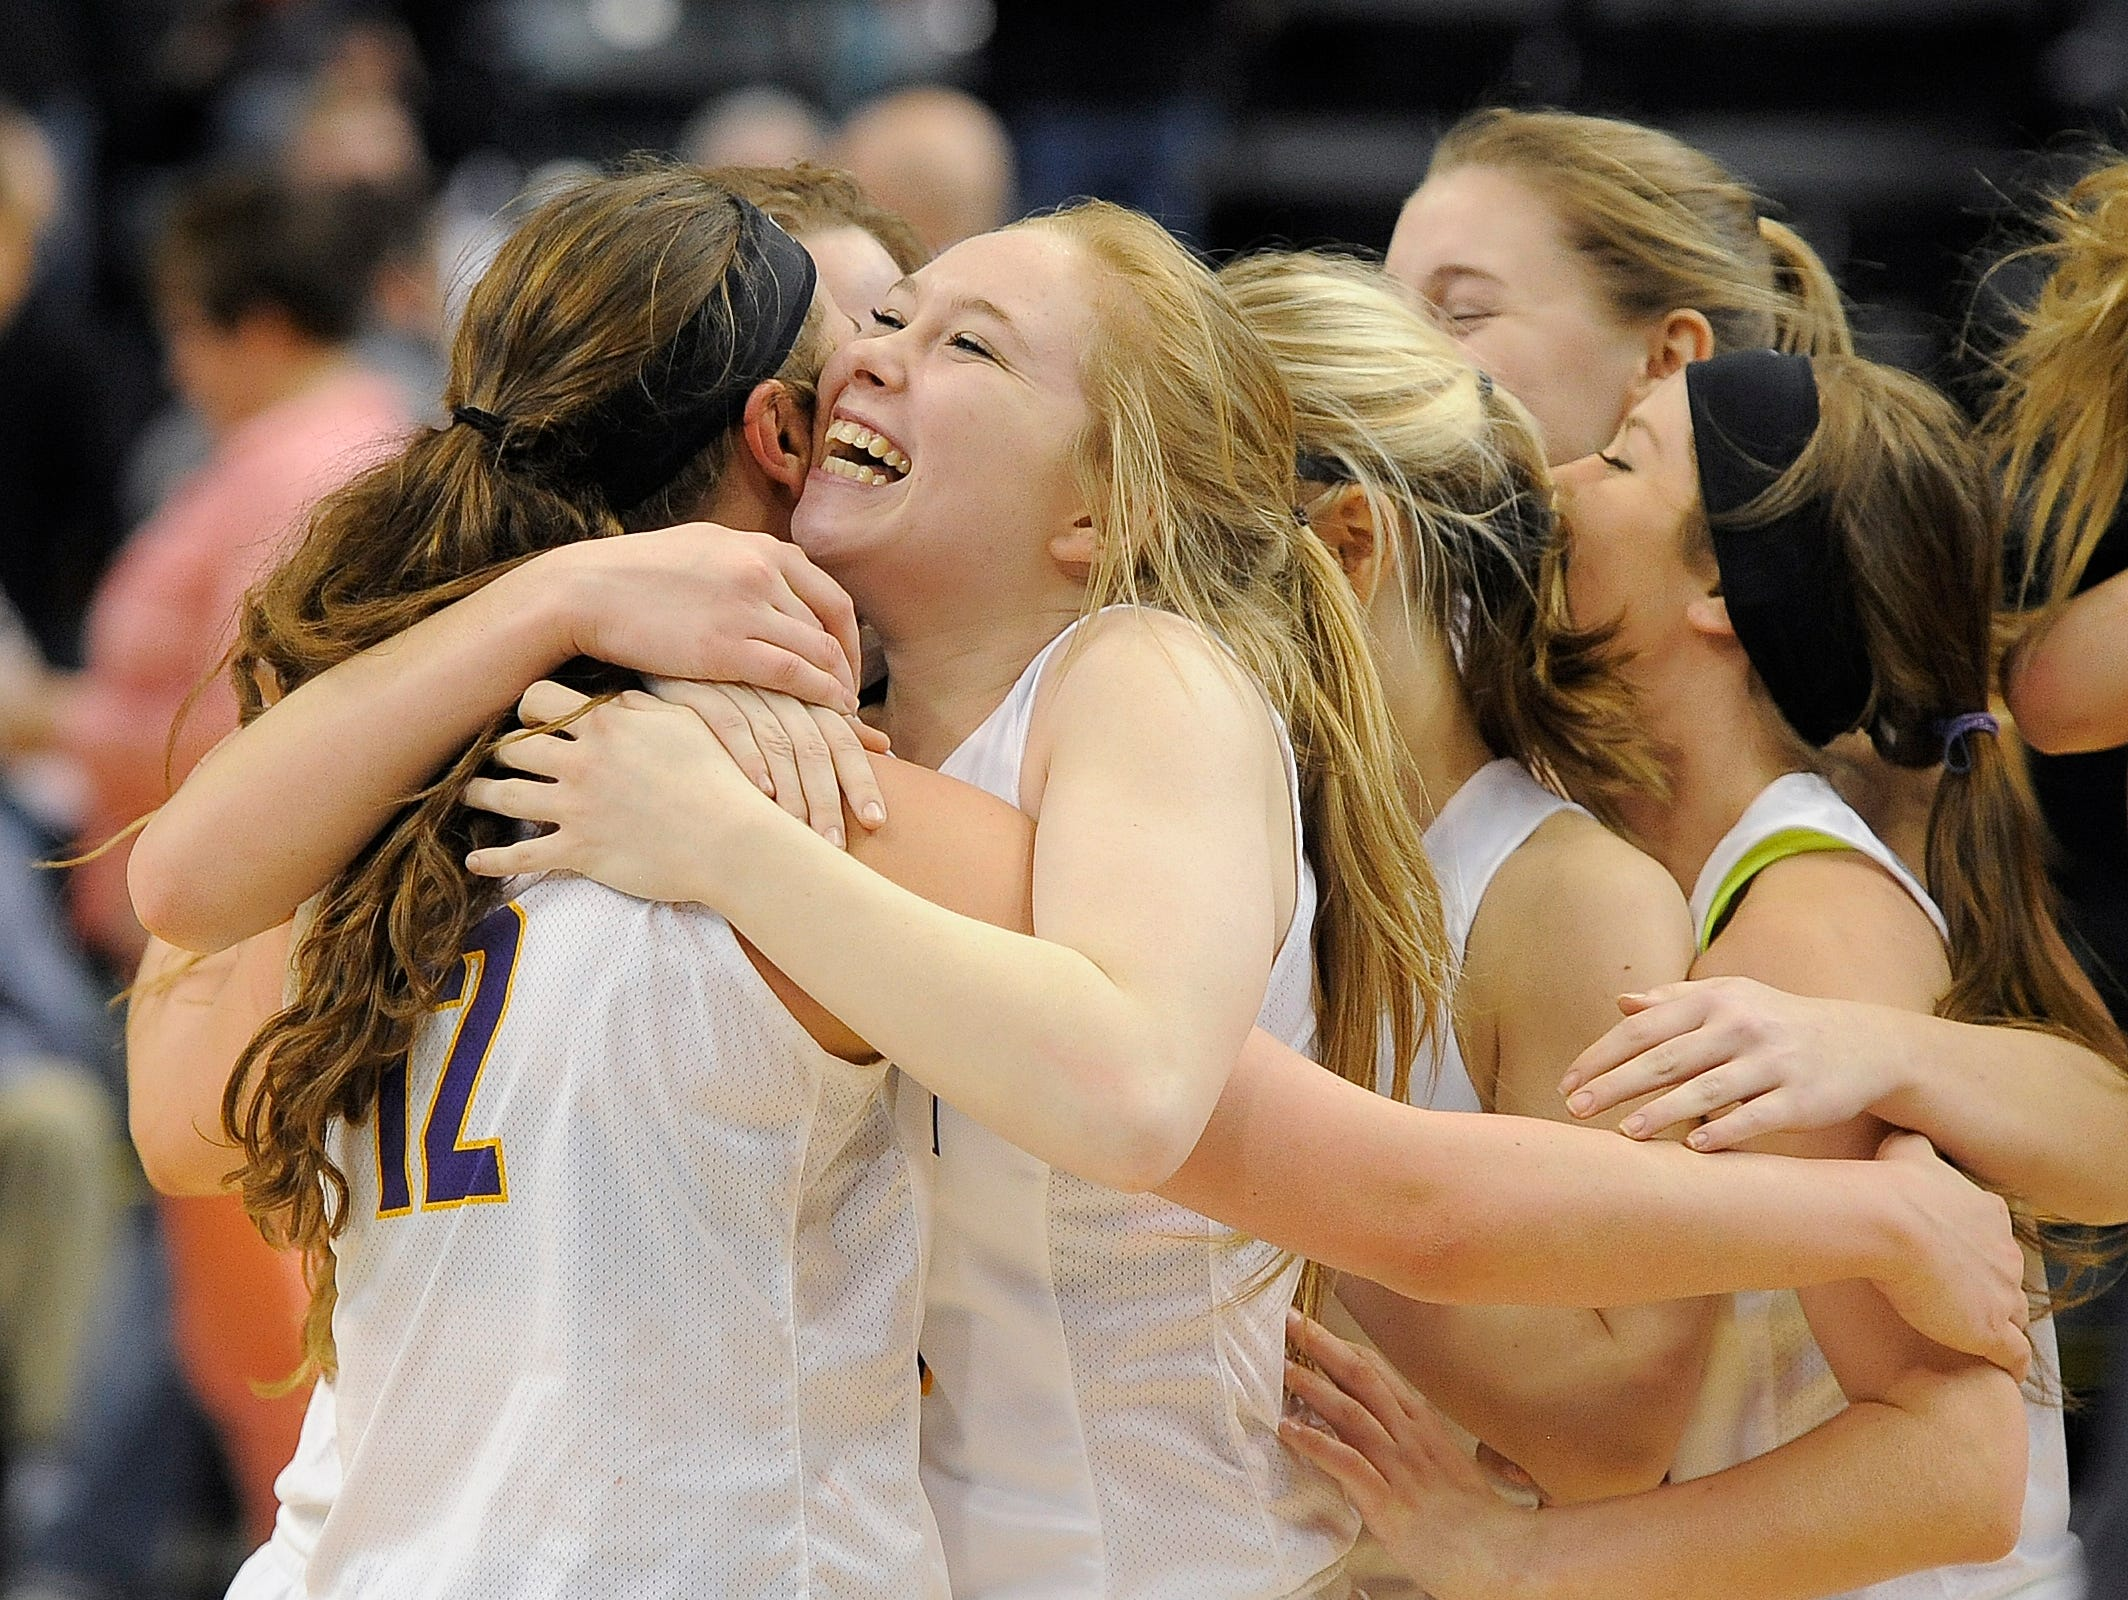 Eastern Pekin's Holly Purlee (center) celebrates with teammates afert defeating Oak Hill on Saturday in the 2017 IHSAA 2A Girls Basketball State Championship at Bankers Life Fieldhouse in Indianapolis. It was Eastern Pekin's first state championship. (Photo by David Lee Hartlage, Special to The Courier-Journal) Feb. 25, 2017